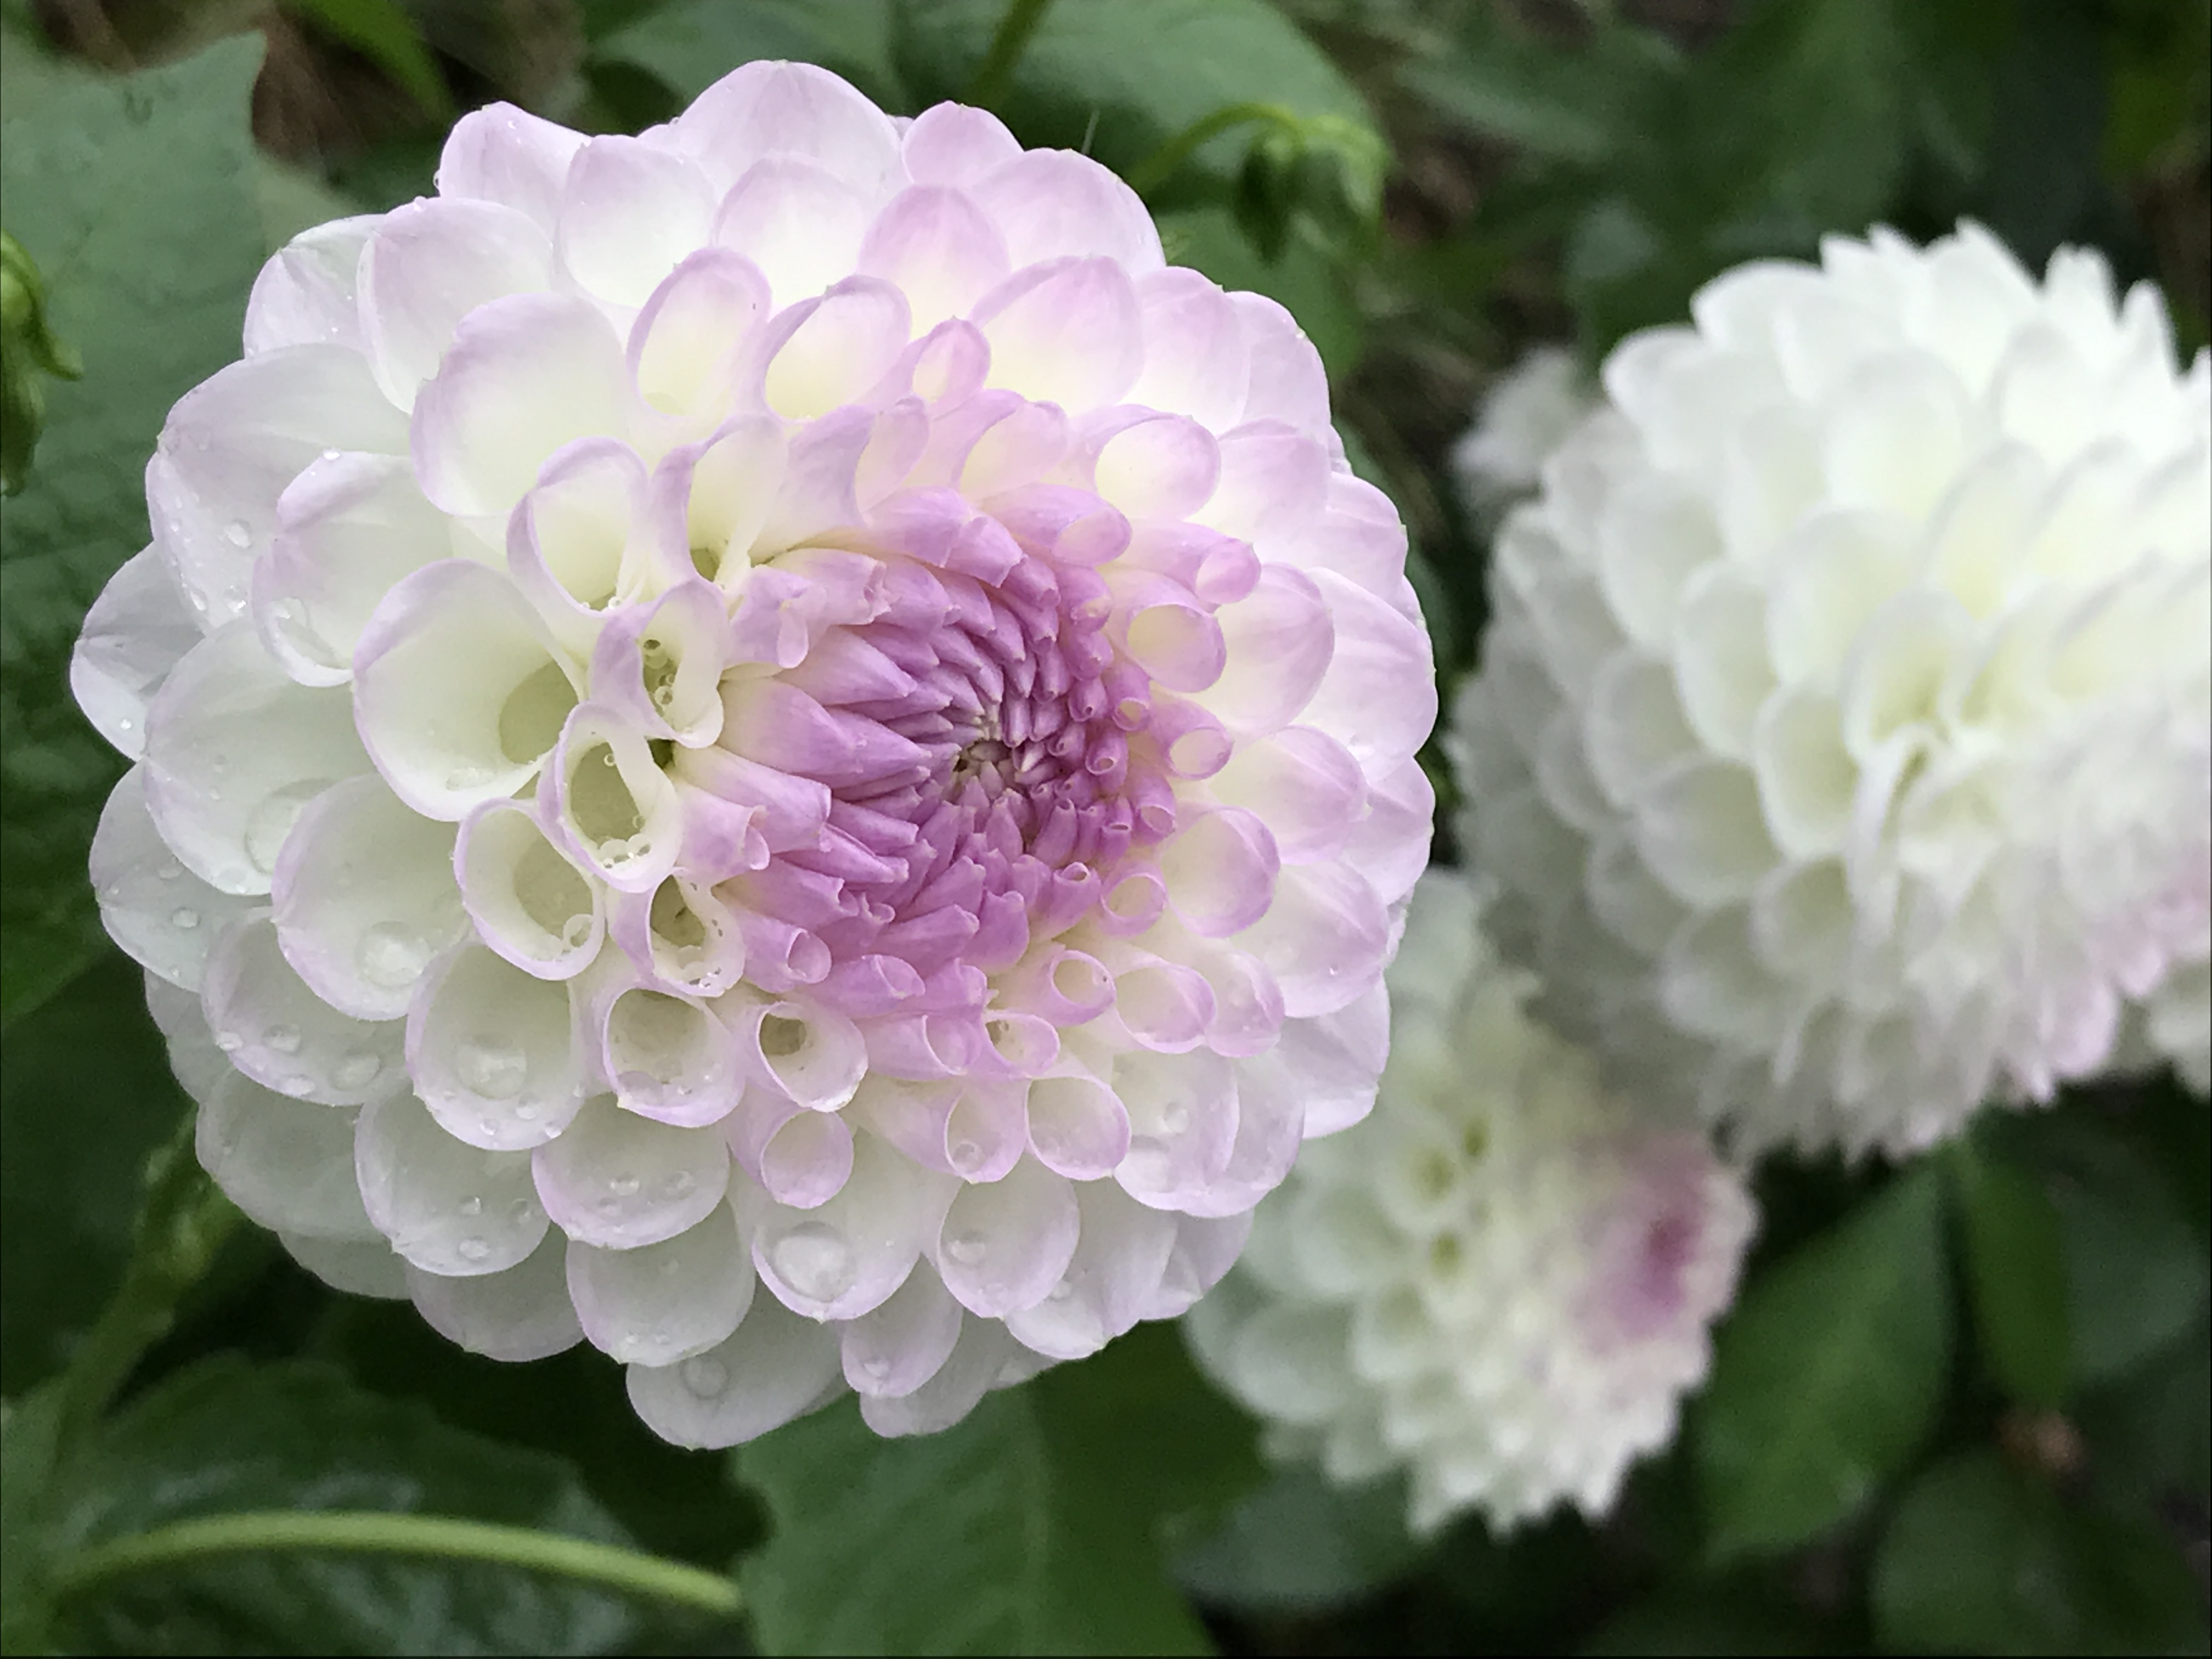 7 ways to make sure your dahlias dazzle this summer irish examiner dahlia josie gott hannah stephensonpa izmirmasajfo